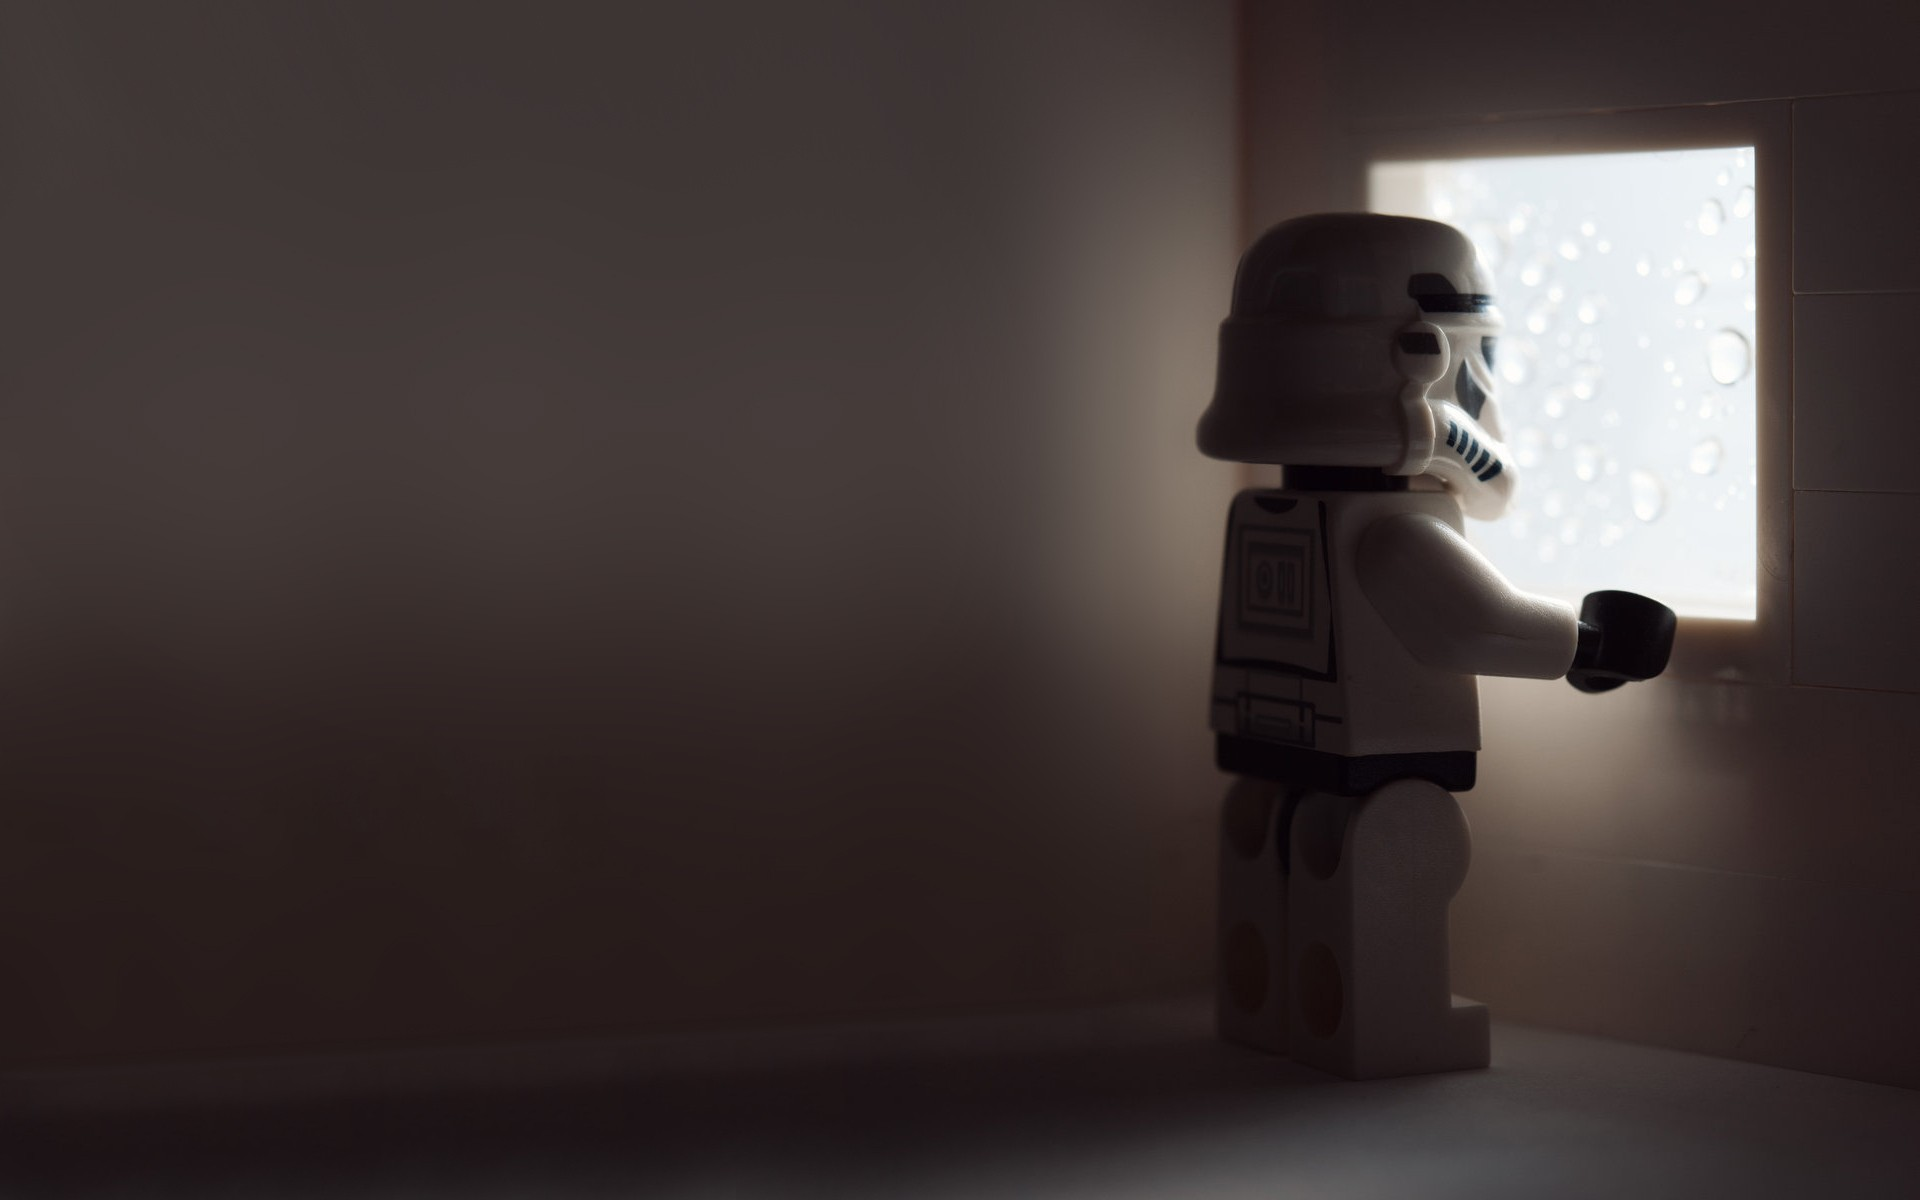 Star wars lego stormtroopers wallpaper background 1920x1200